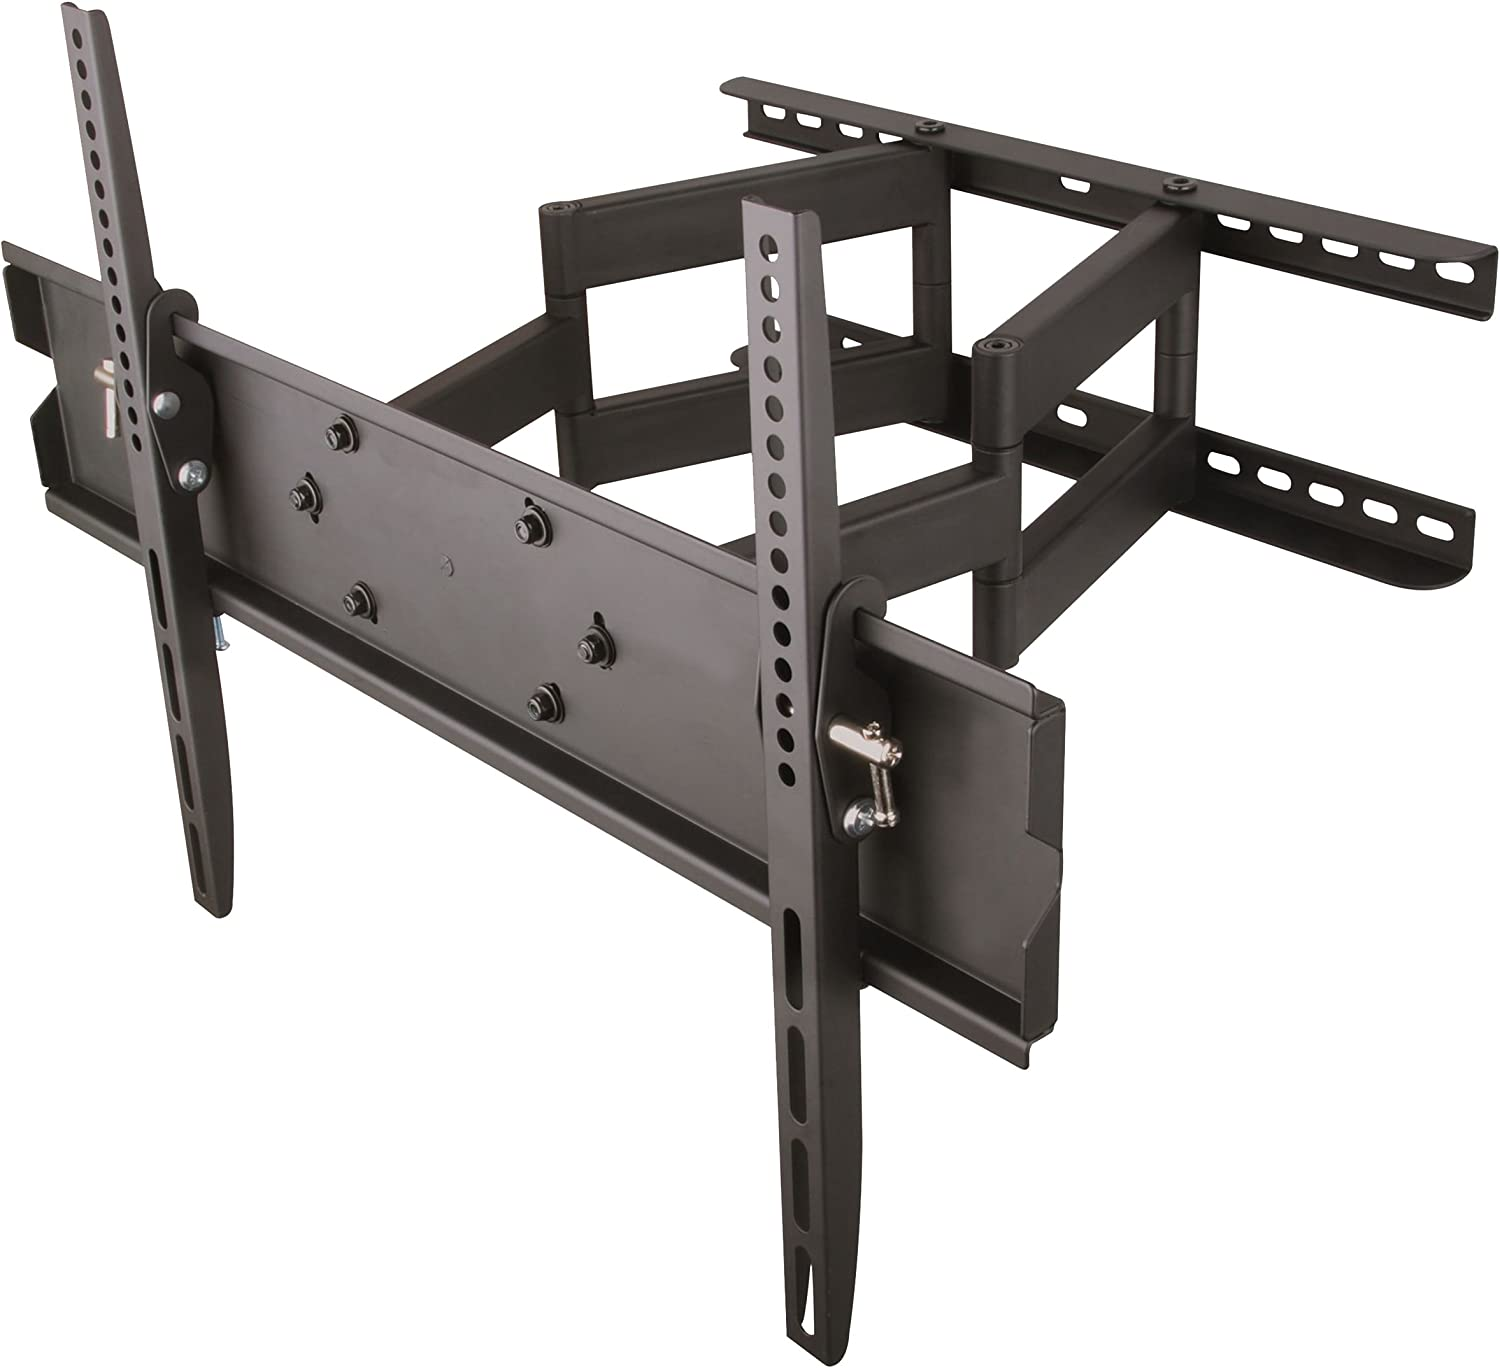 Tygerclaw LCD4102BLK 32 to 63-Inch Tilt and Swivel Wall Mount